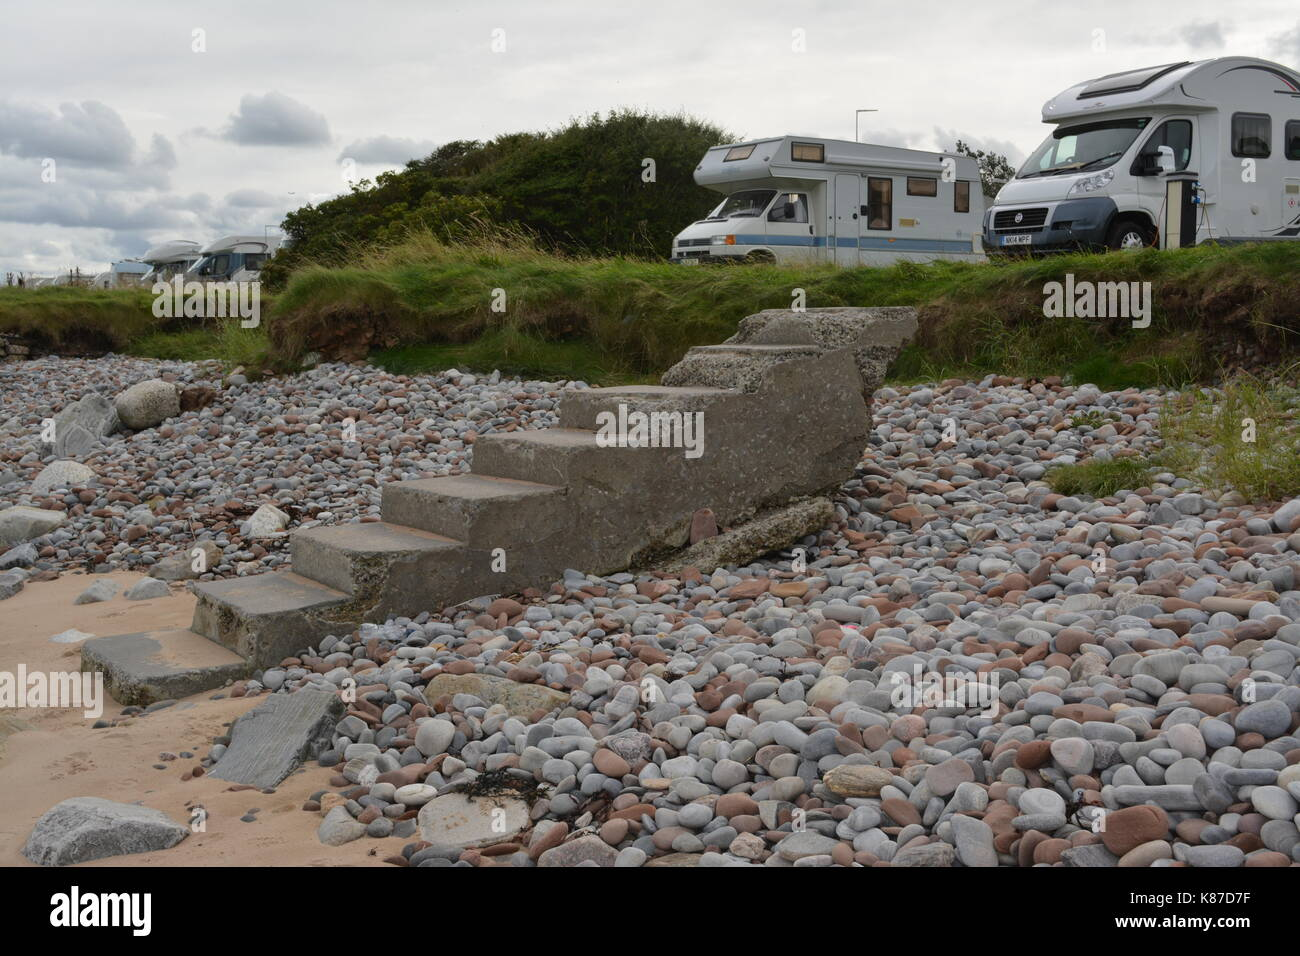 Concrete formed steps stairs on sandy pebble beach coastal erosion poor maintenance motorhome campervans camp site at Rosemarkie in Scotland - Stock Image